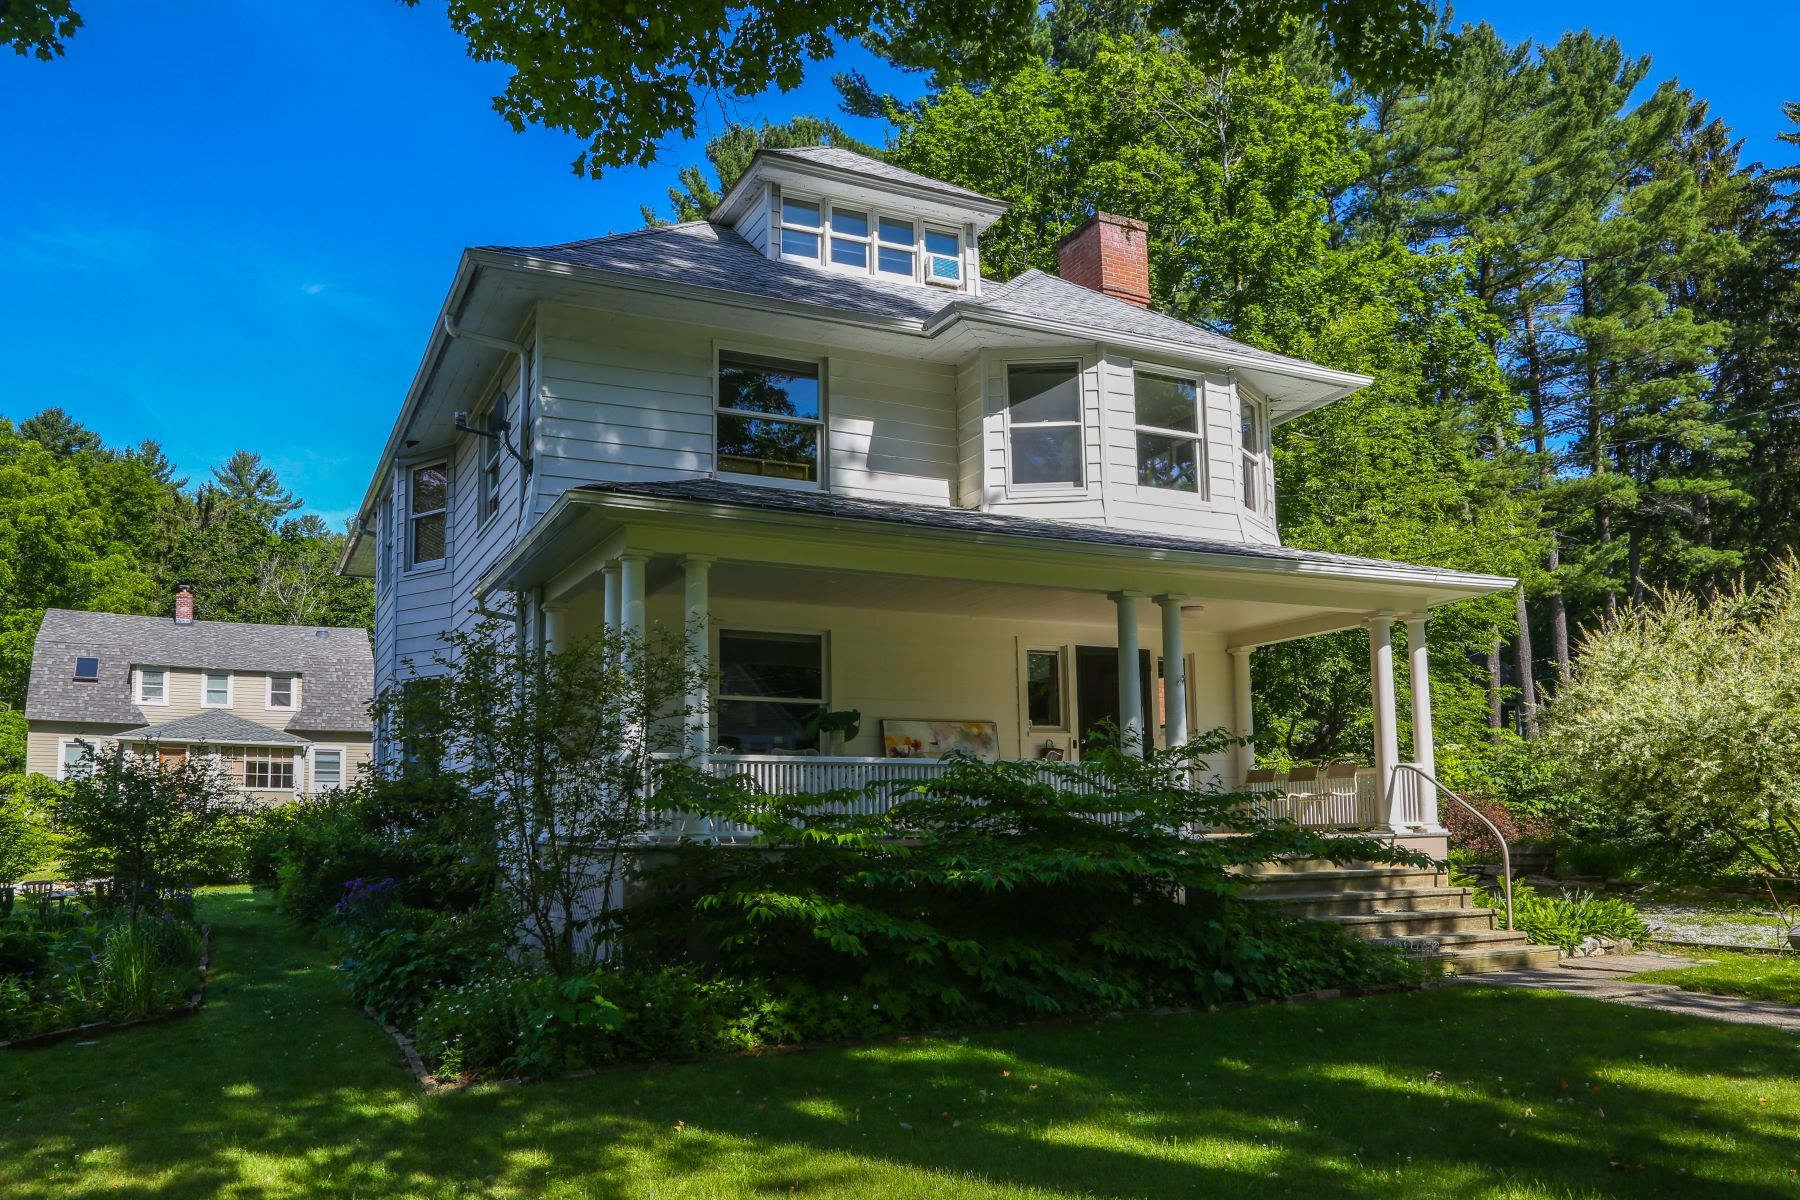 Additional photo for property listing at Beautifully Maintained American Foursquare on The Hill 8 Oak St Great Barrington, Massachusetts 01230 États-Unis